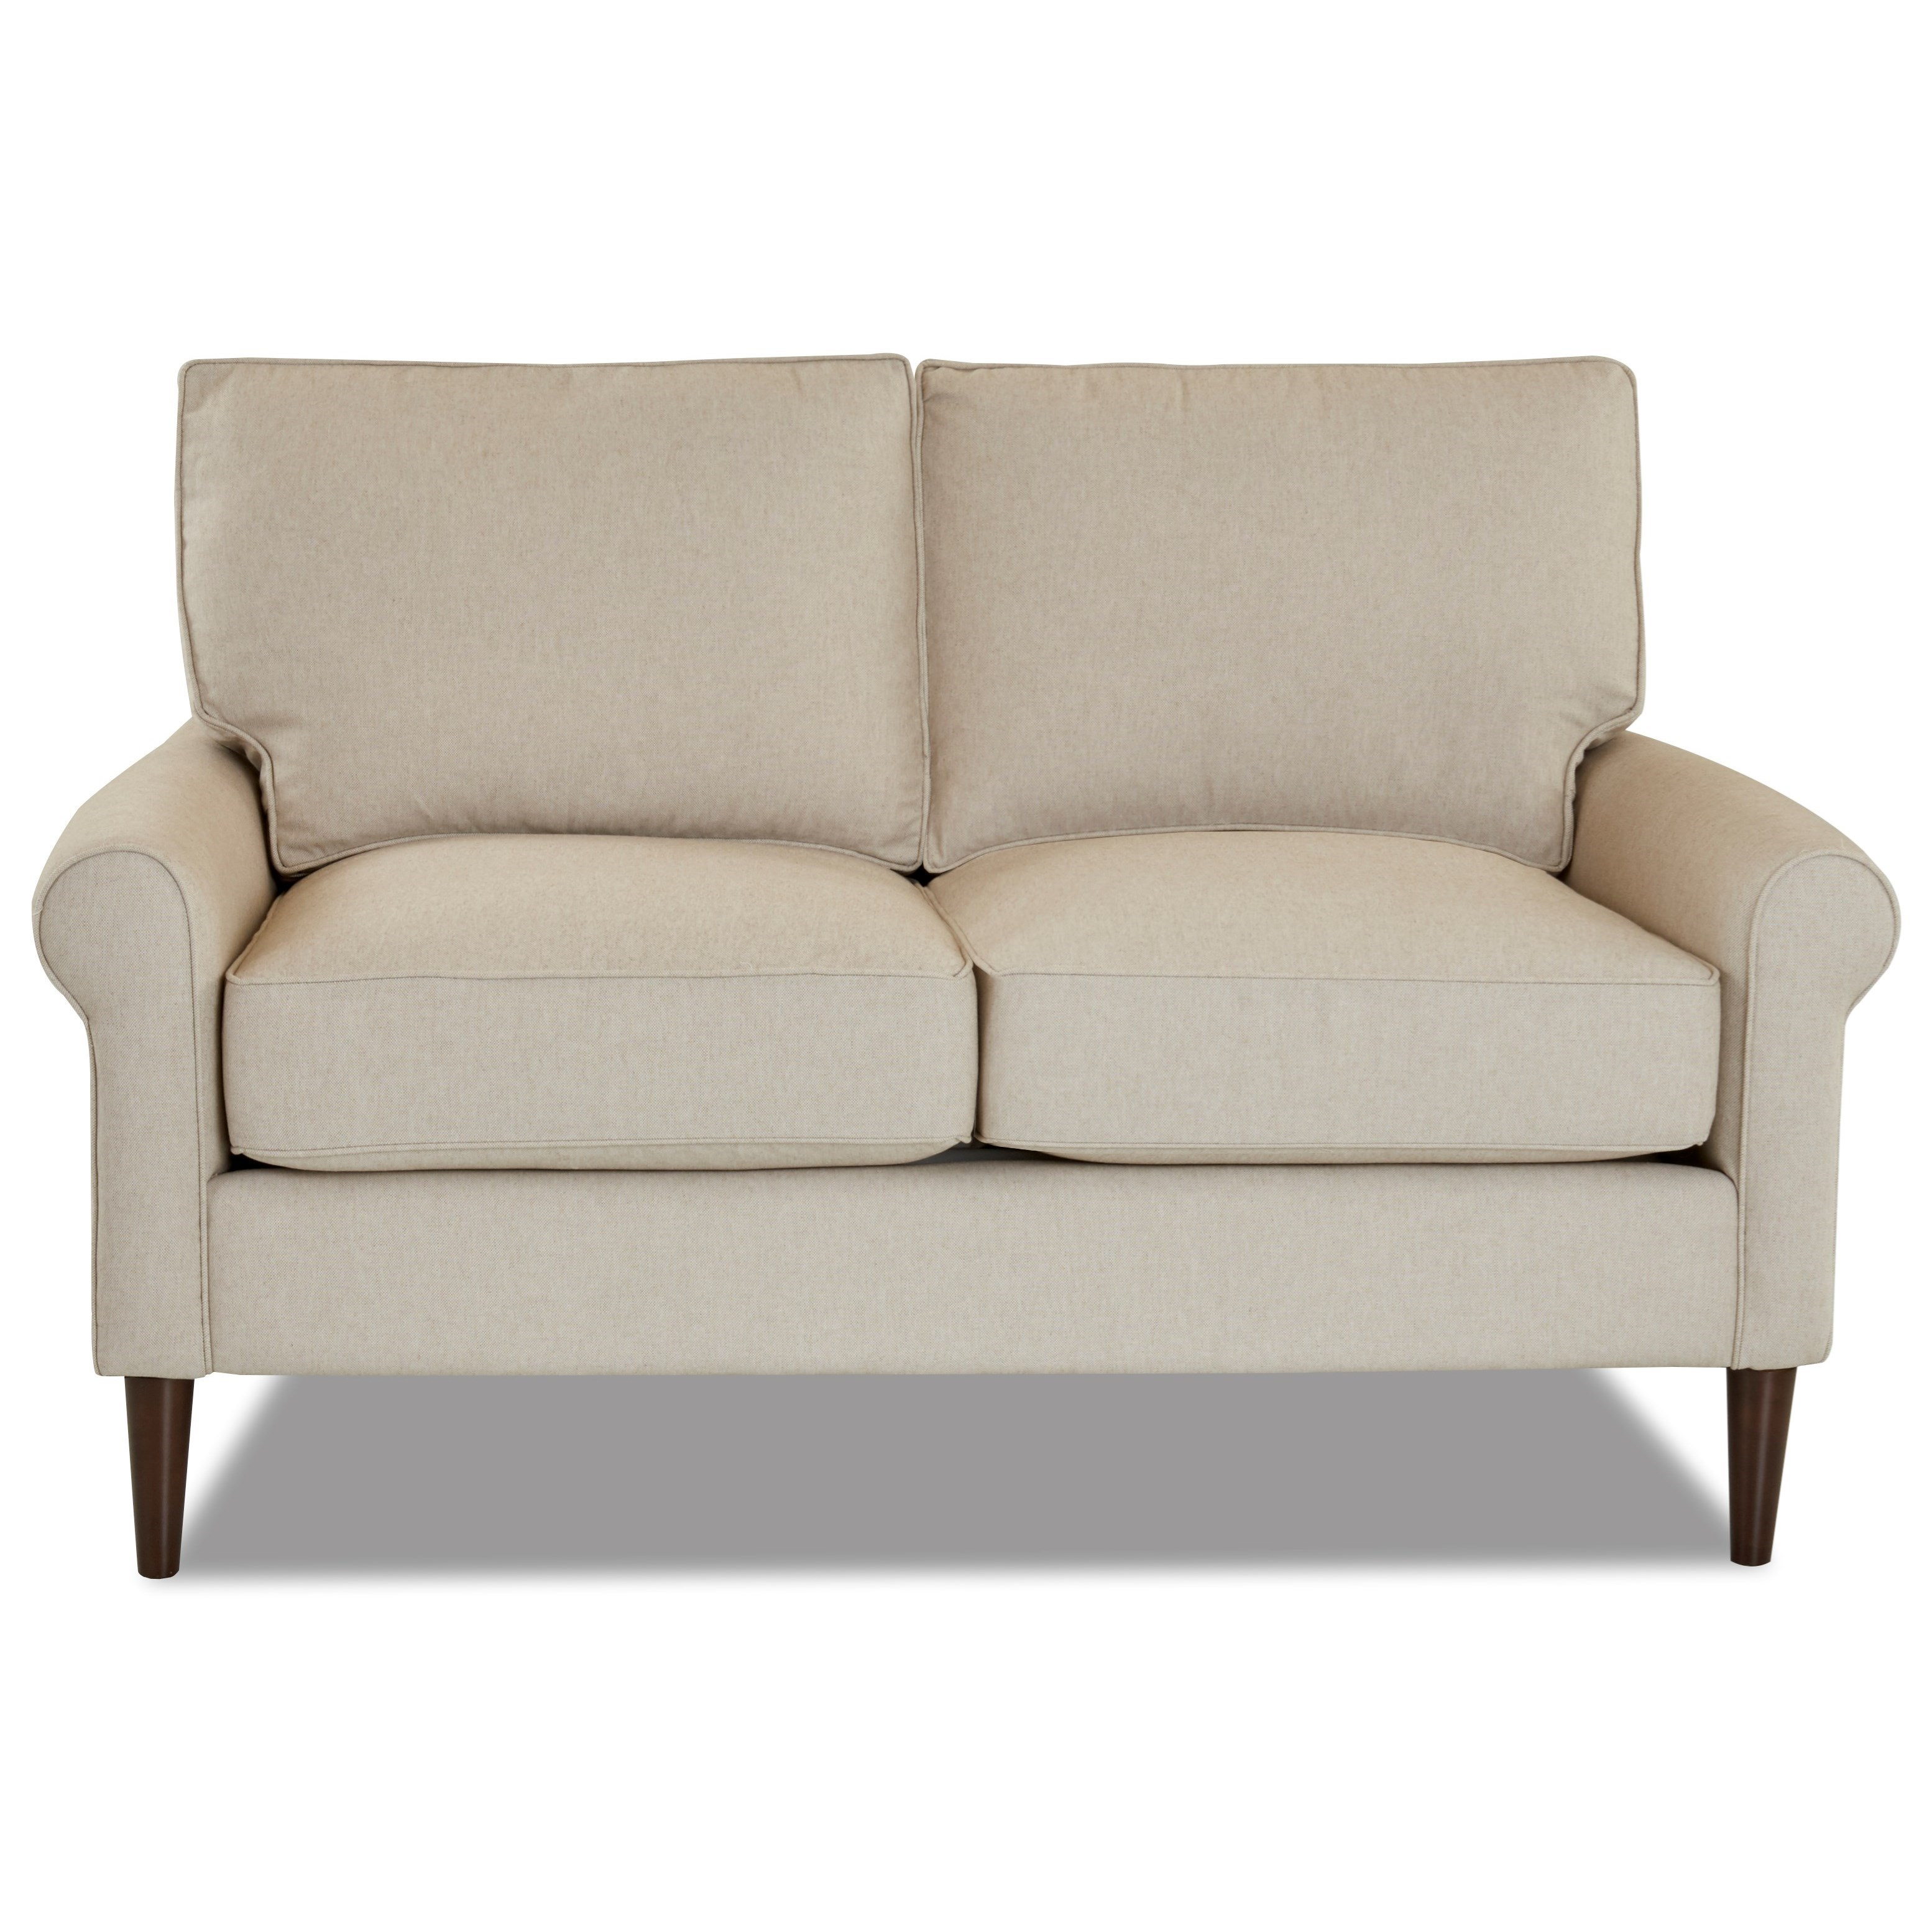 Loveseat with Round Tapered Legs